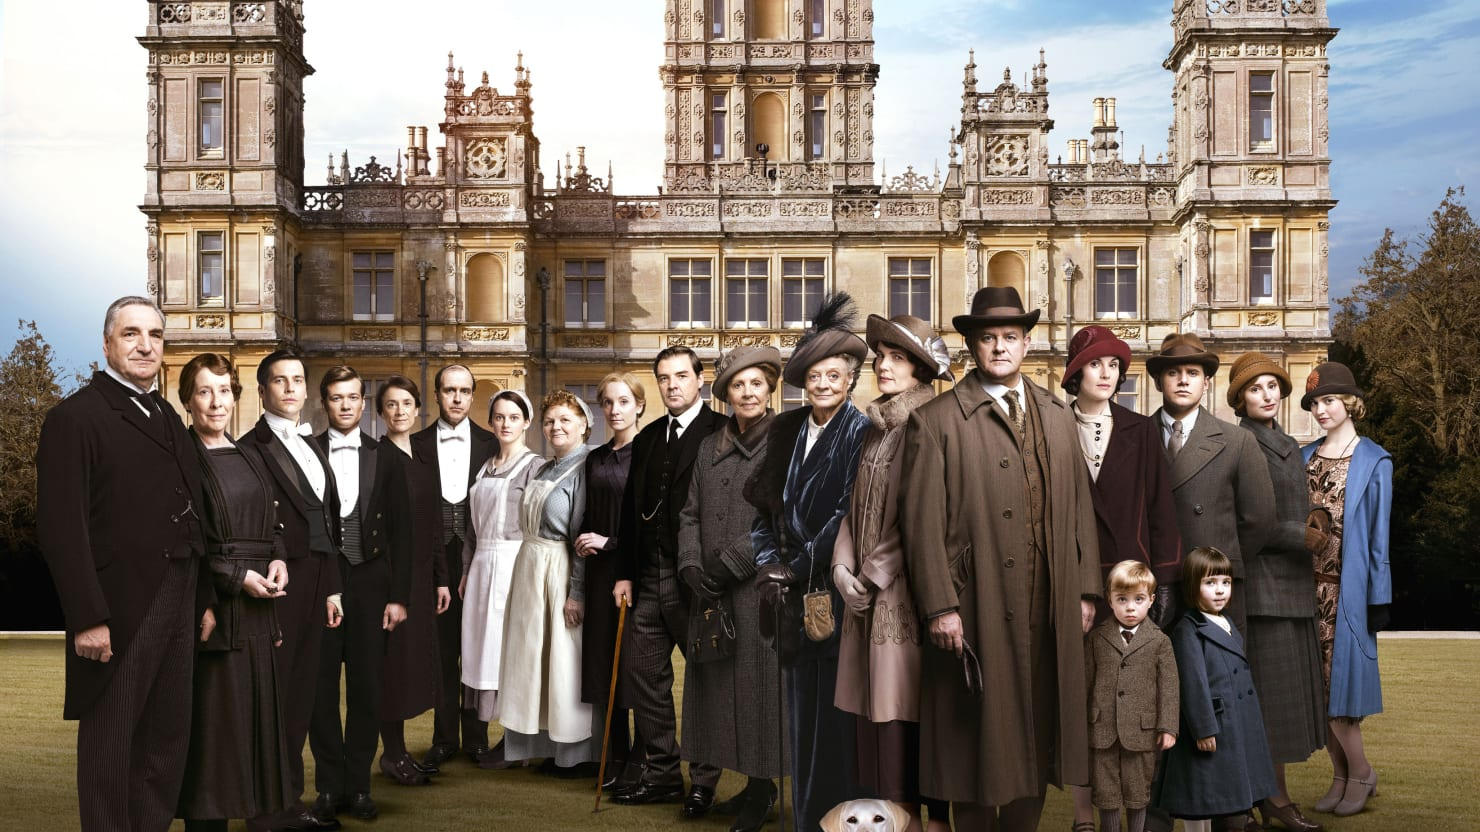 What Made 'Downton Abbey' So Magical? Tim Teeman Speaks To PBS